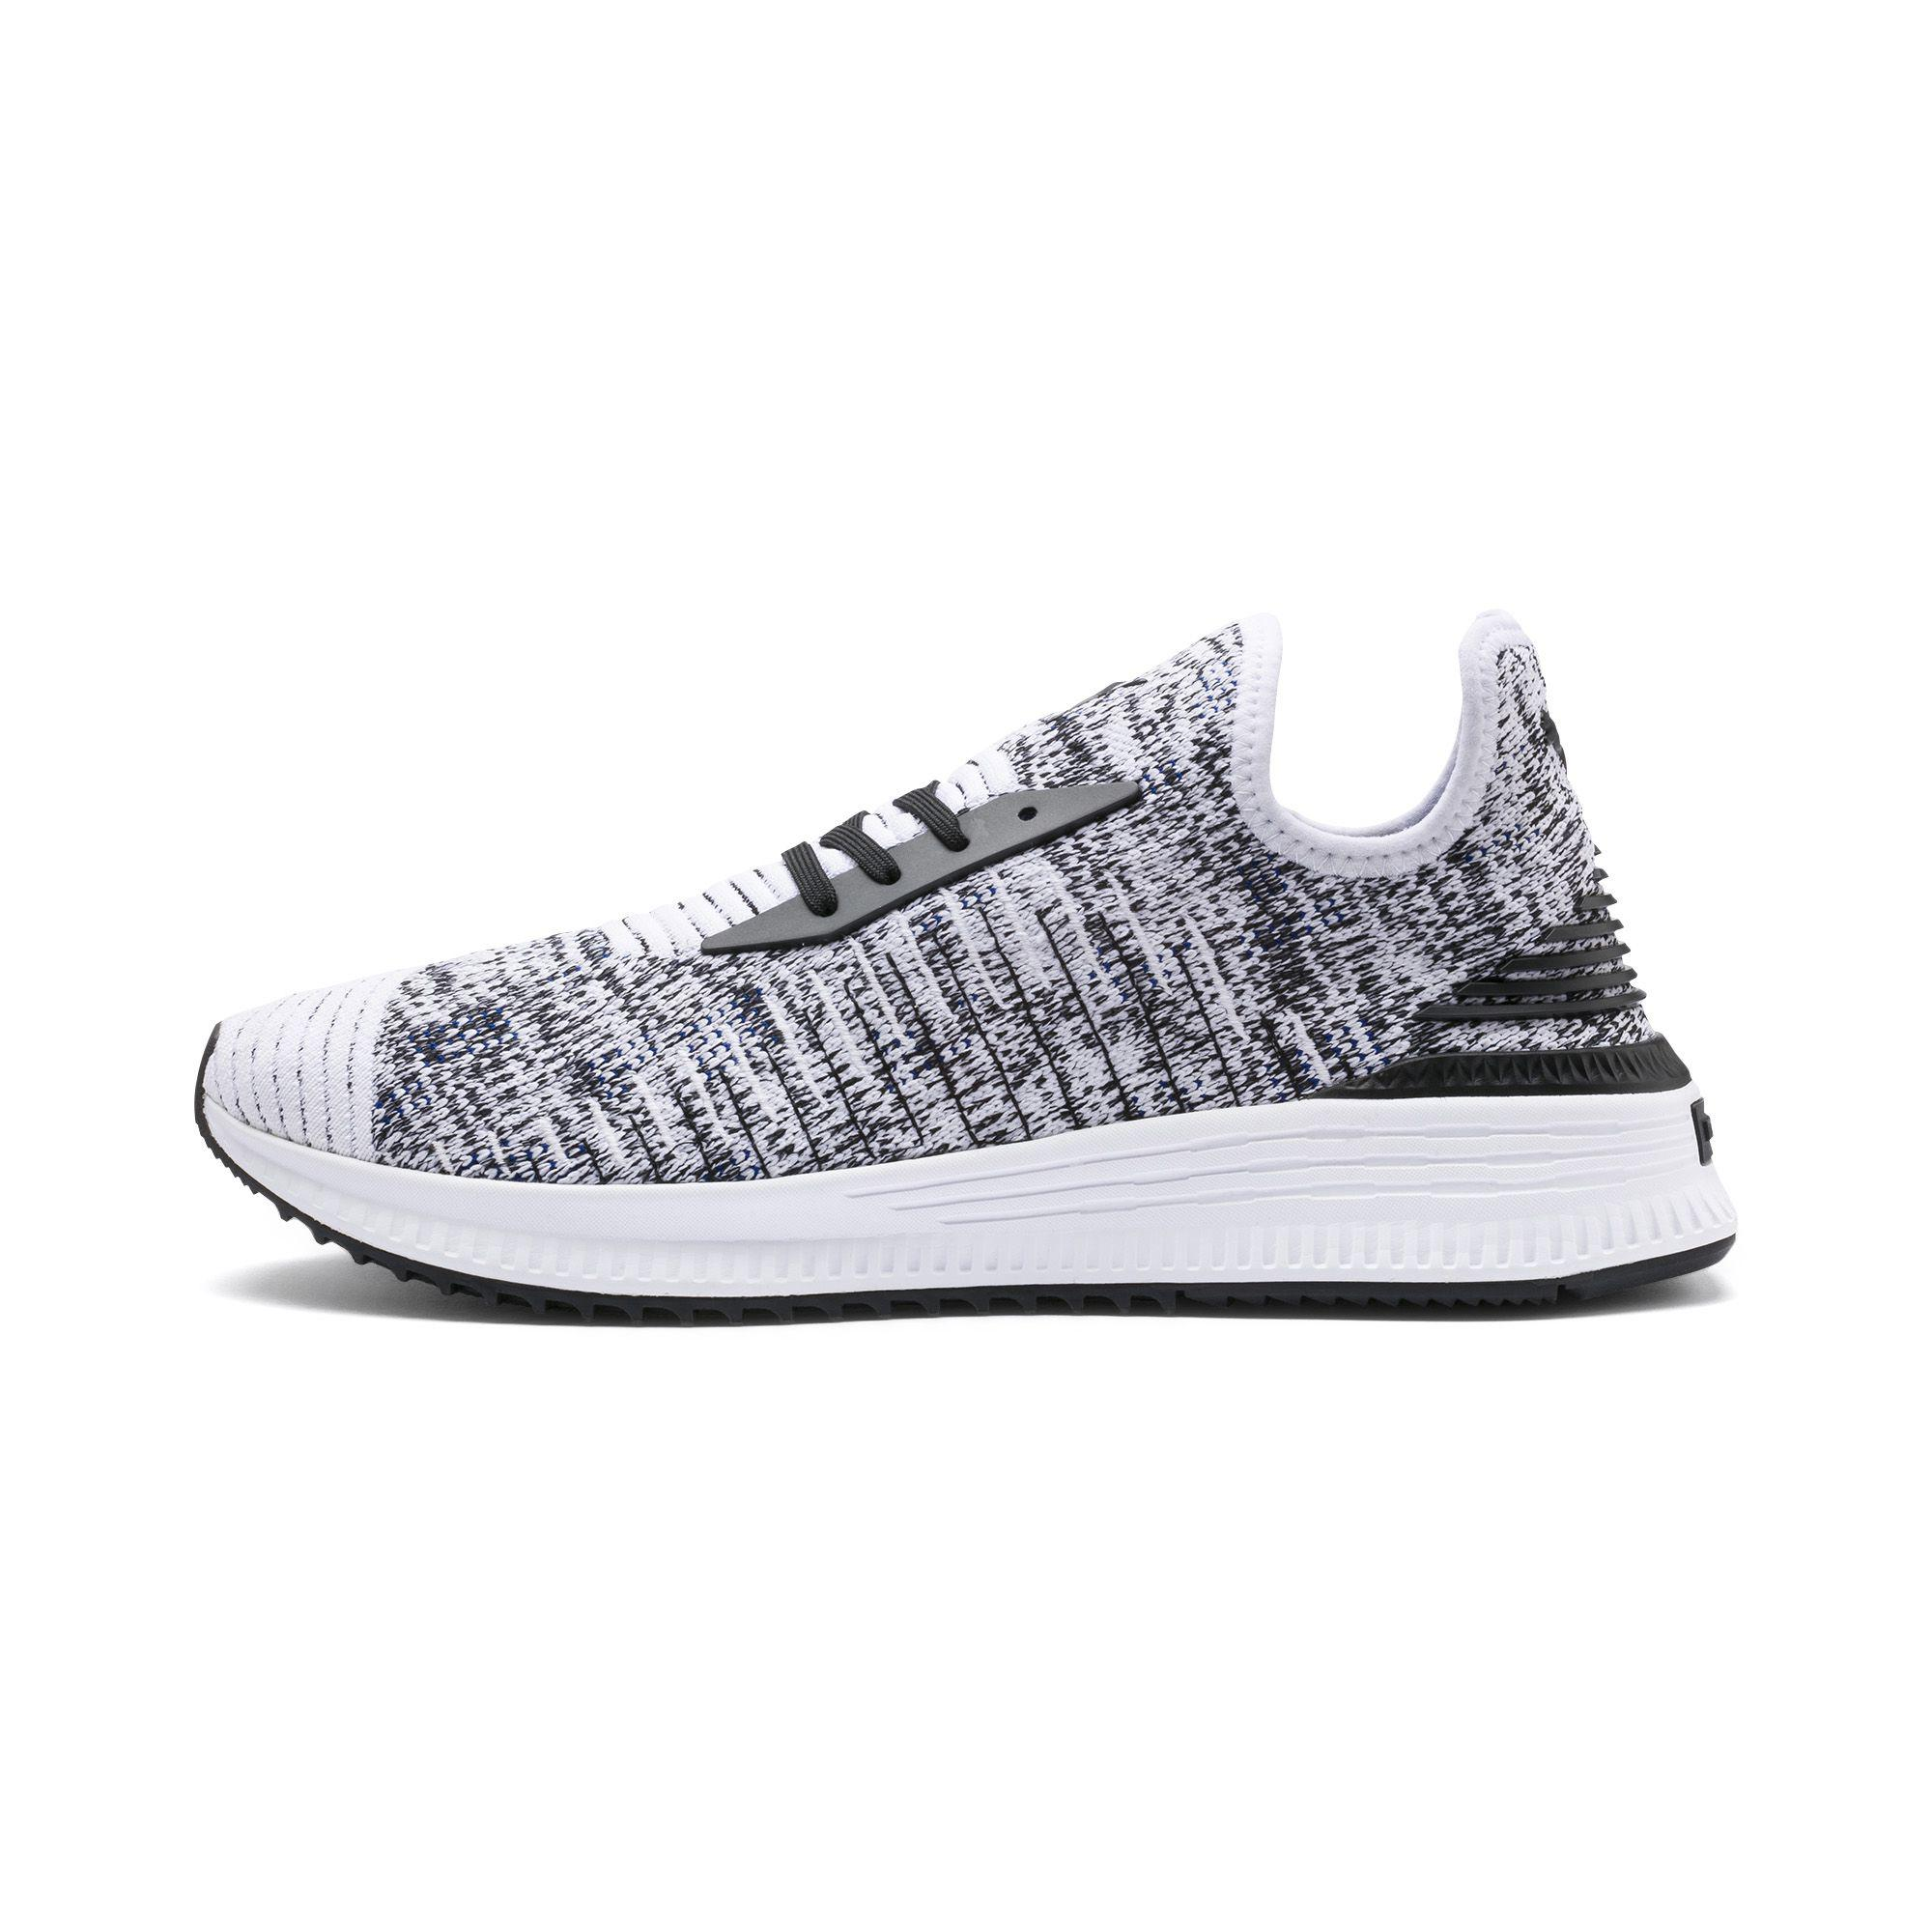 52f6d701039cac Lyst - PUMA Avid Evoknit Mosaic Evolution Sneakers in Blue for Men